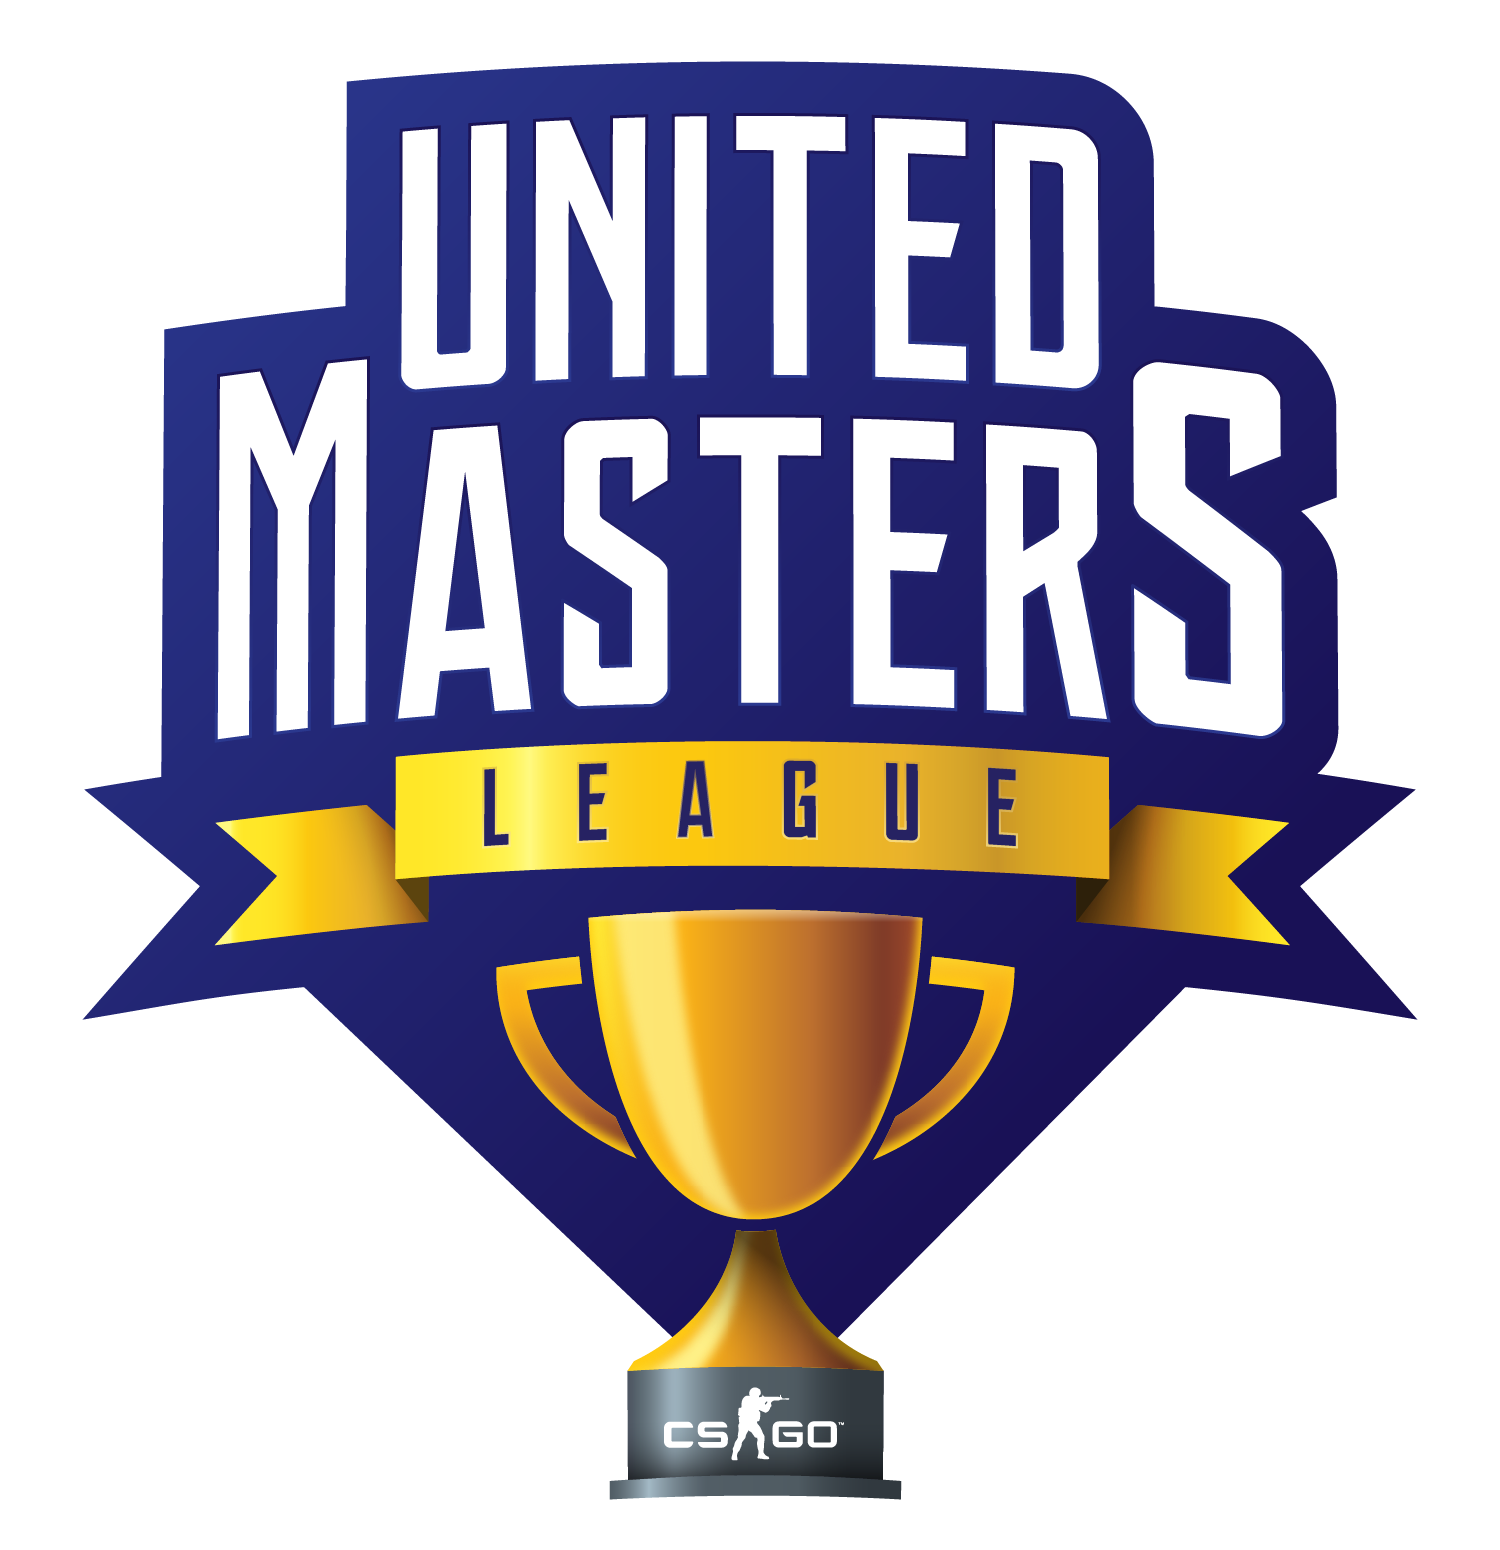 United Masters League Season 2 Tournament